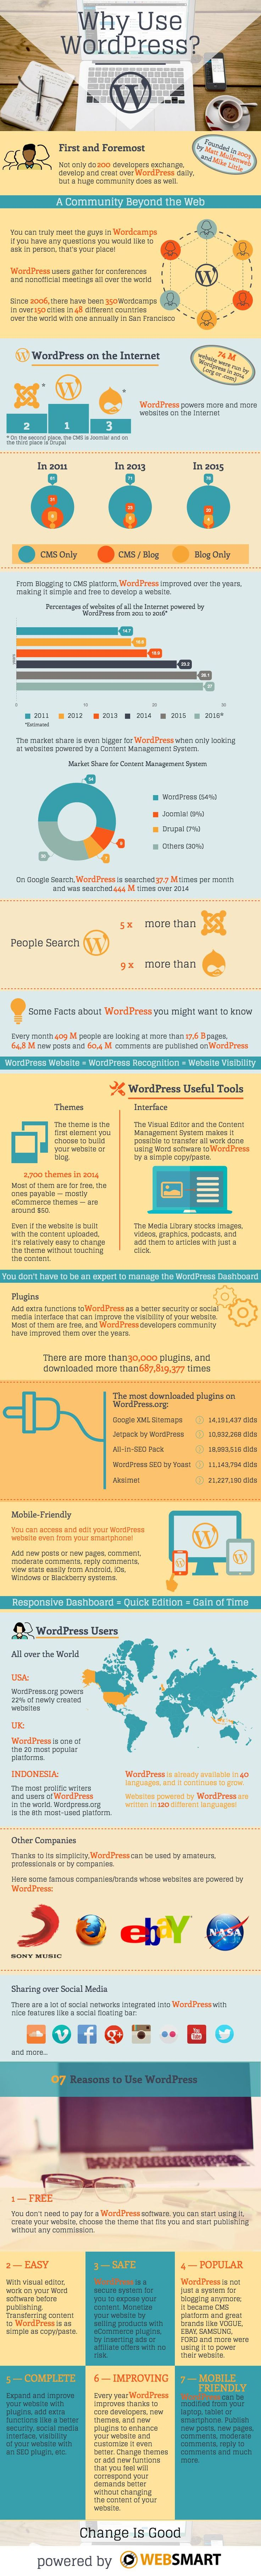 Why use WordPress? If you are still looking for reasons to use WP, here is your answers! #wordpress #website #CMS